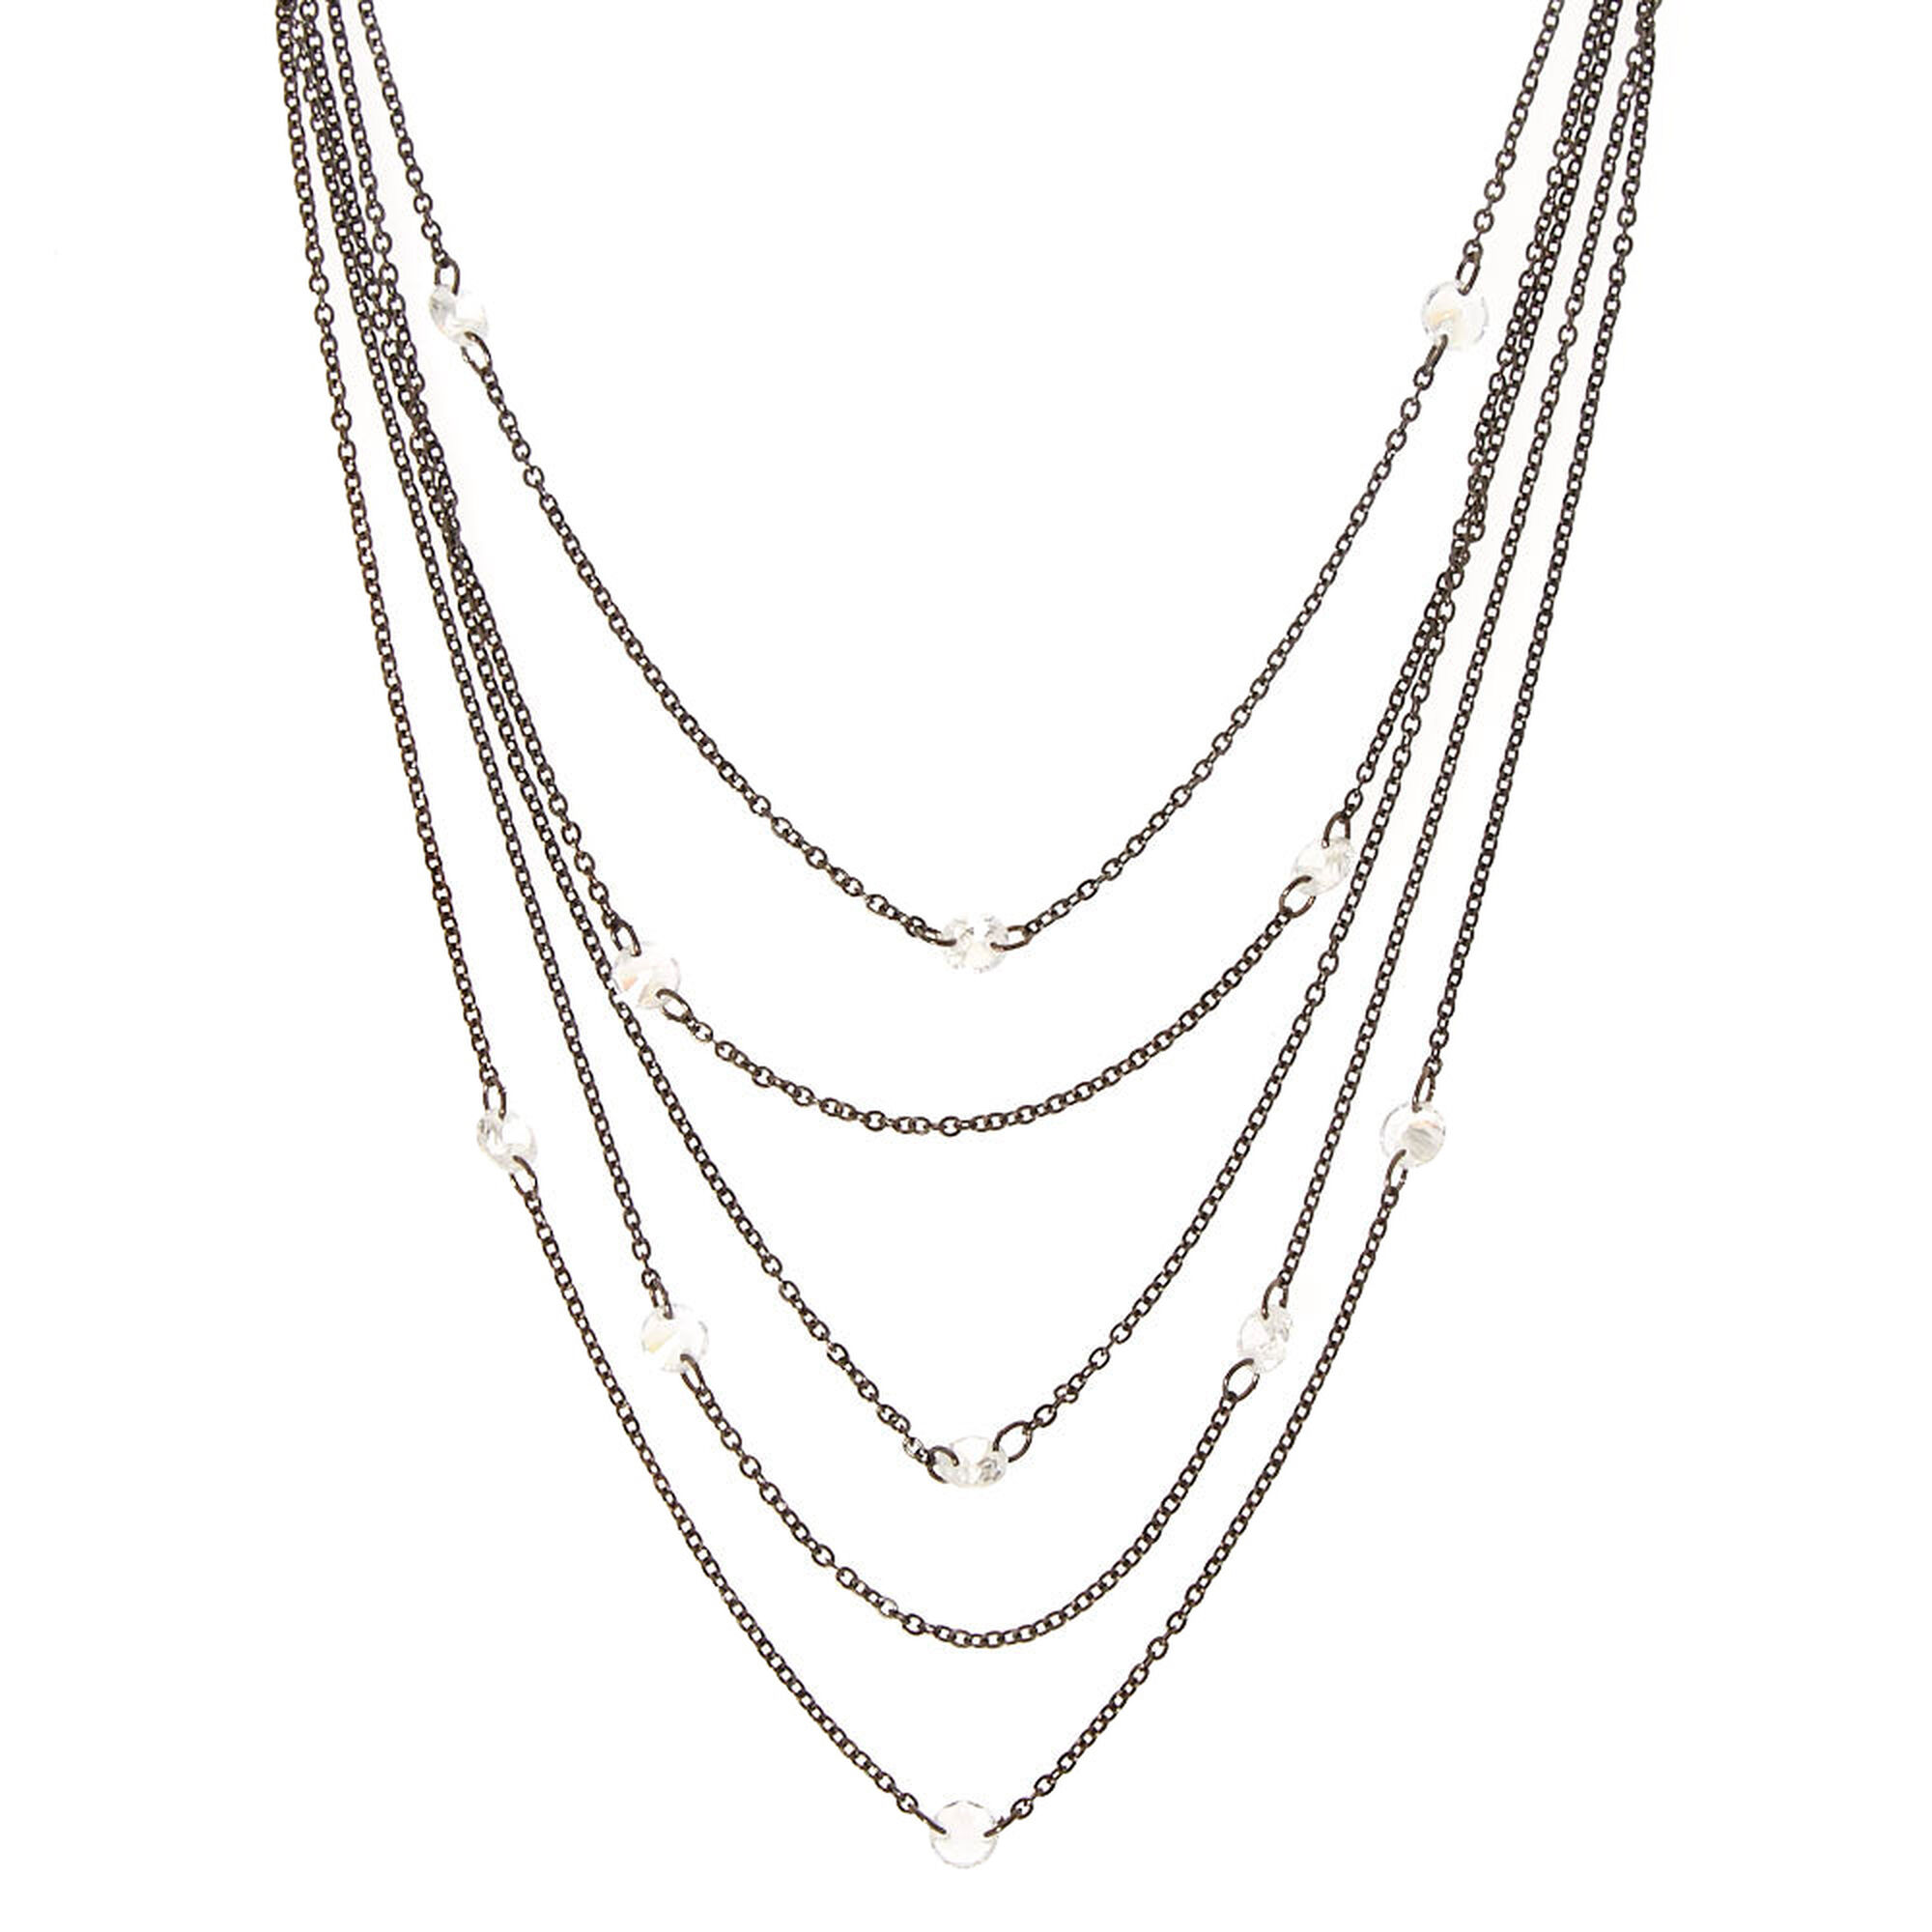 metal hematite mixed row rhodium necklace res rickis multi hi